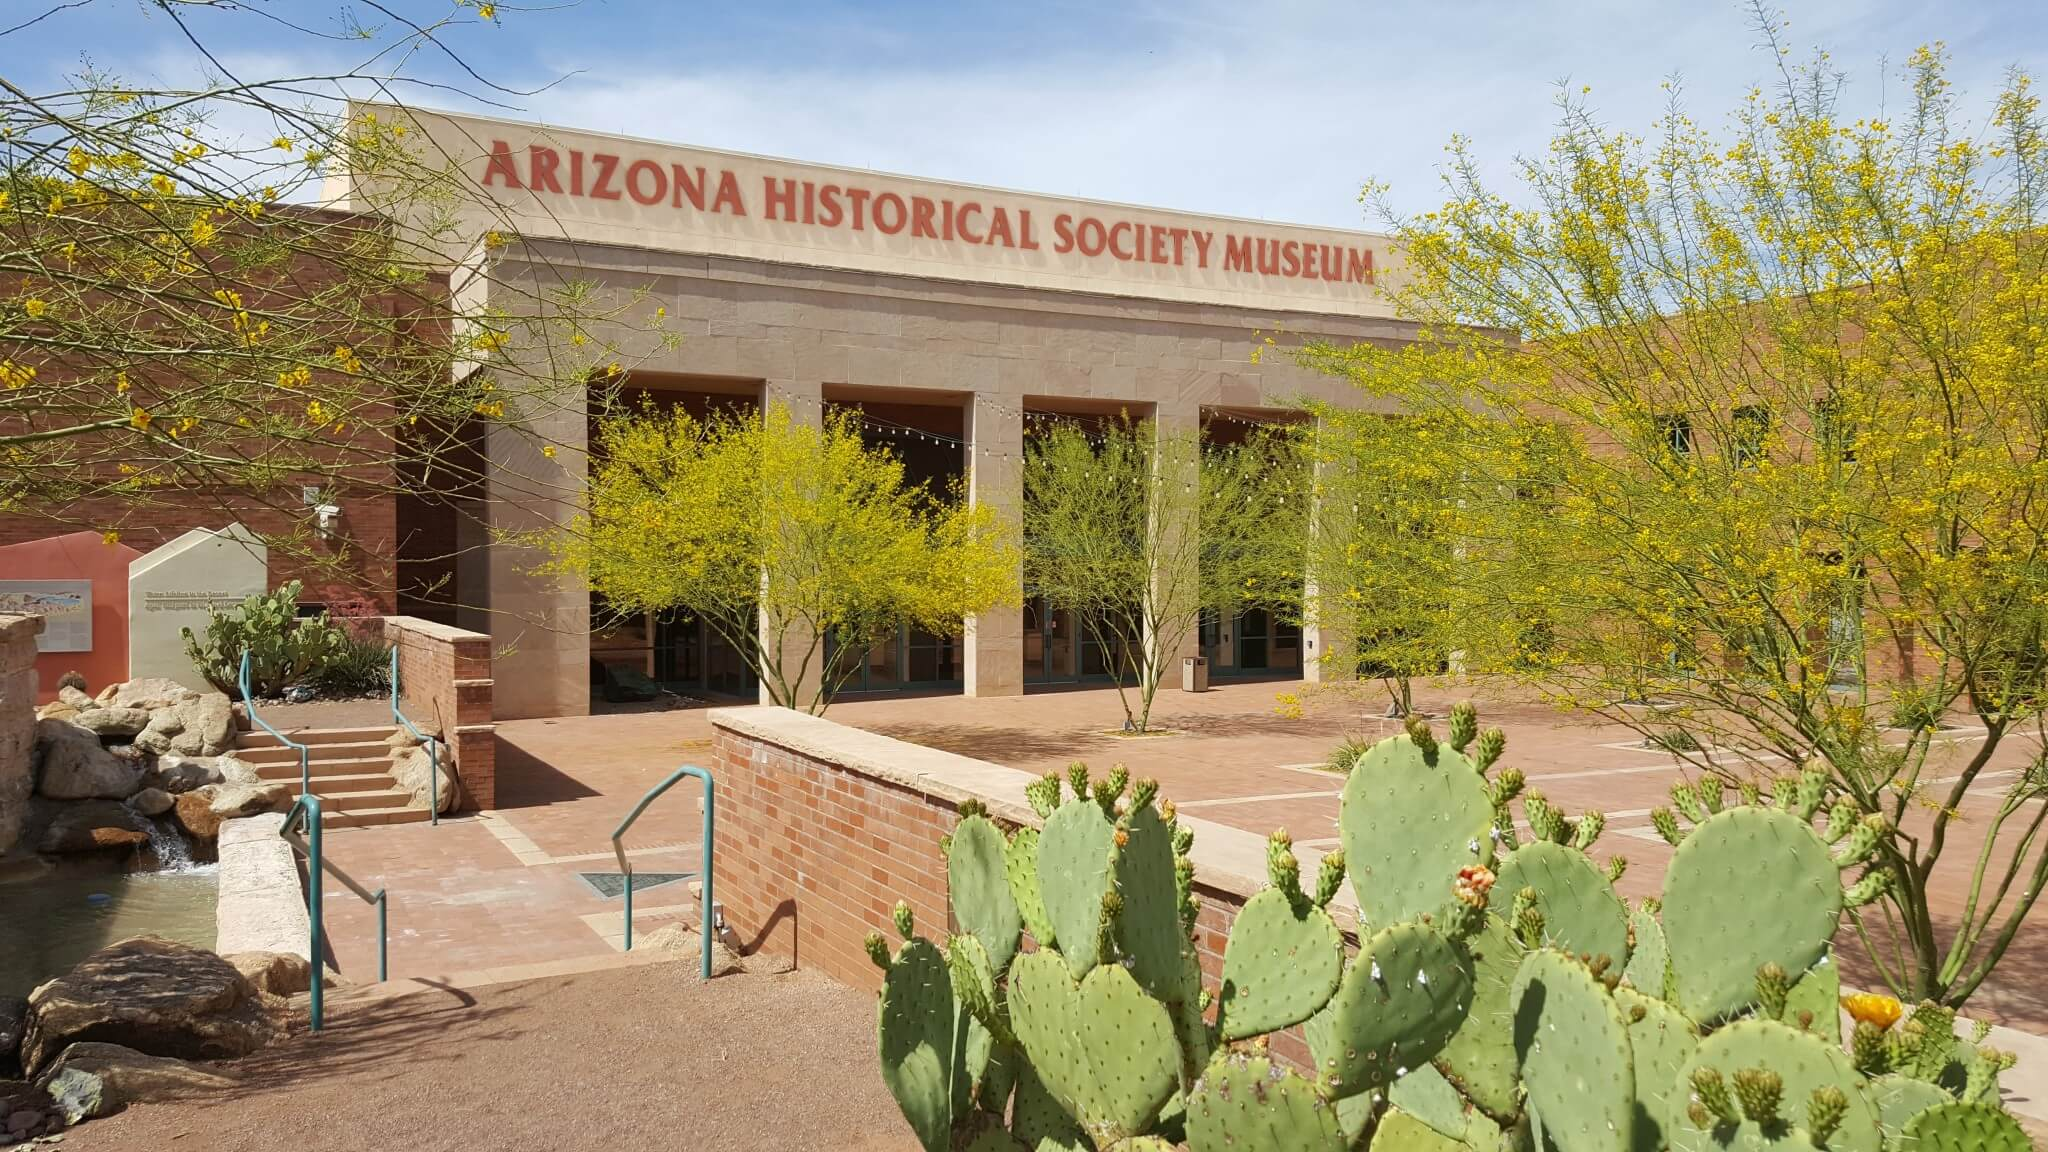 The front of the Arizona Historical Society Museum at the Arizona Heritage Center in Tempe. arizonahistoricalsociety.com